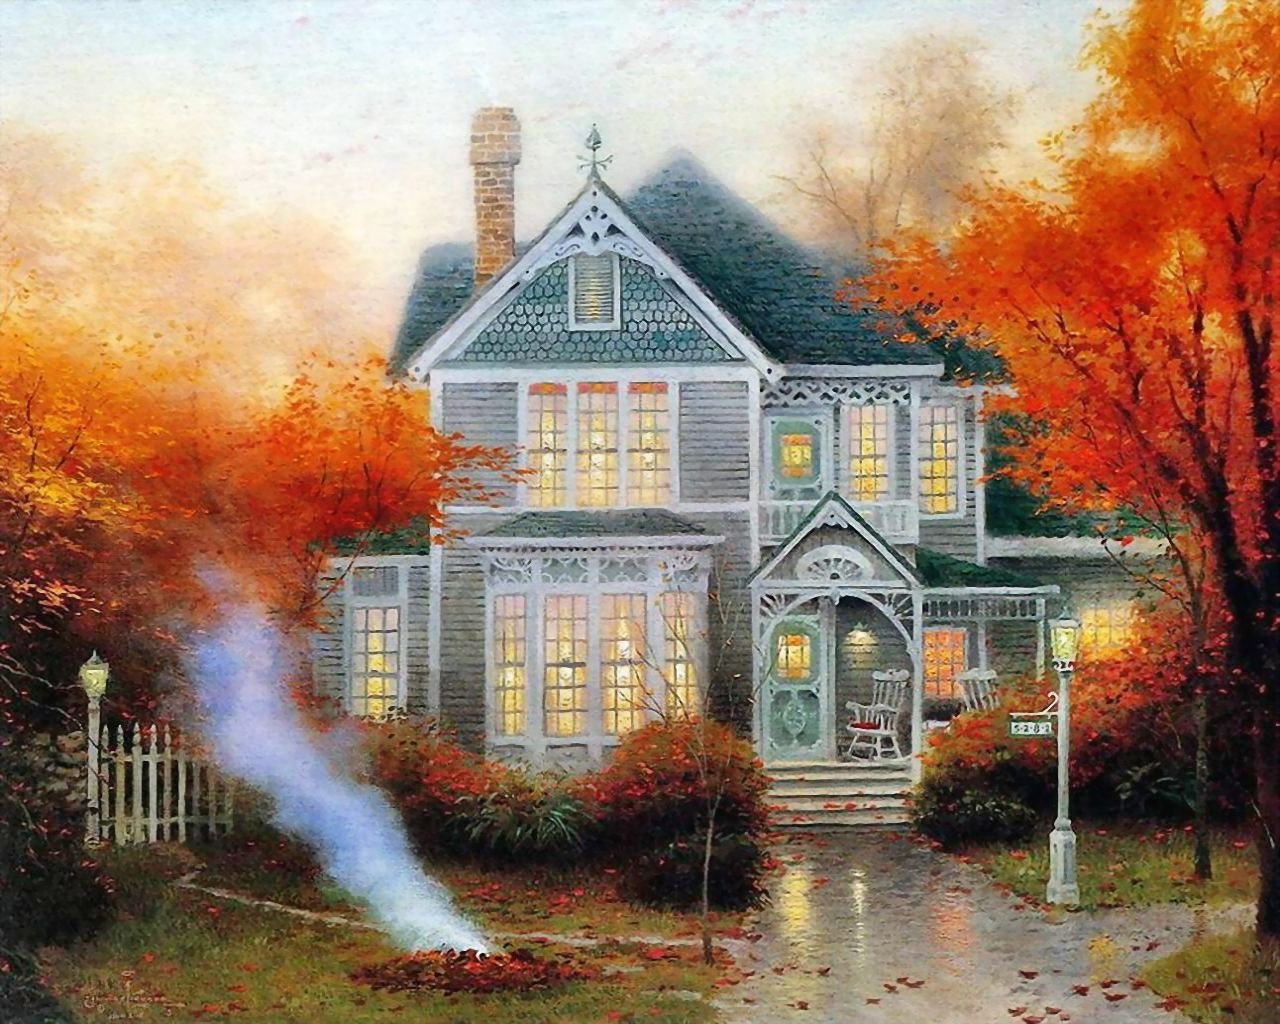 Thomas Kinkade - Autumn and country house